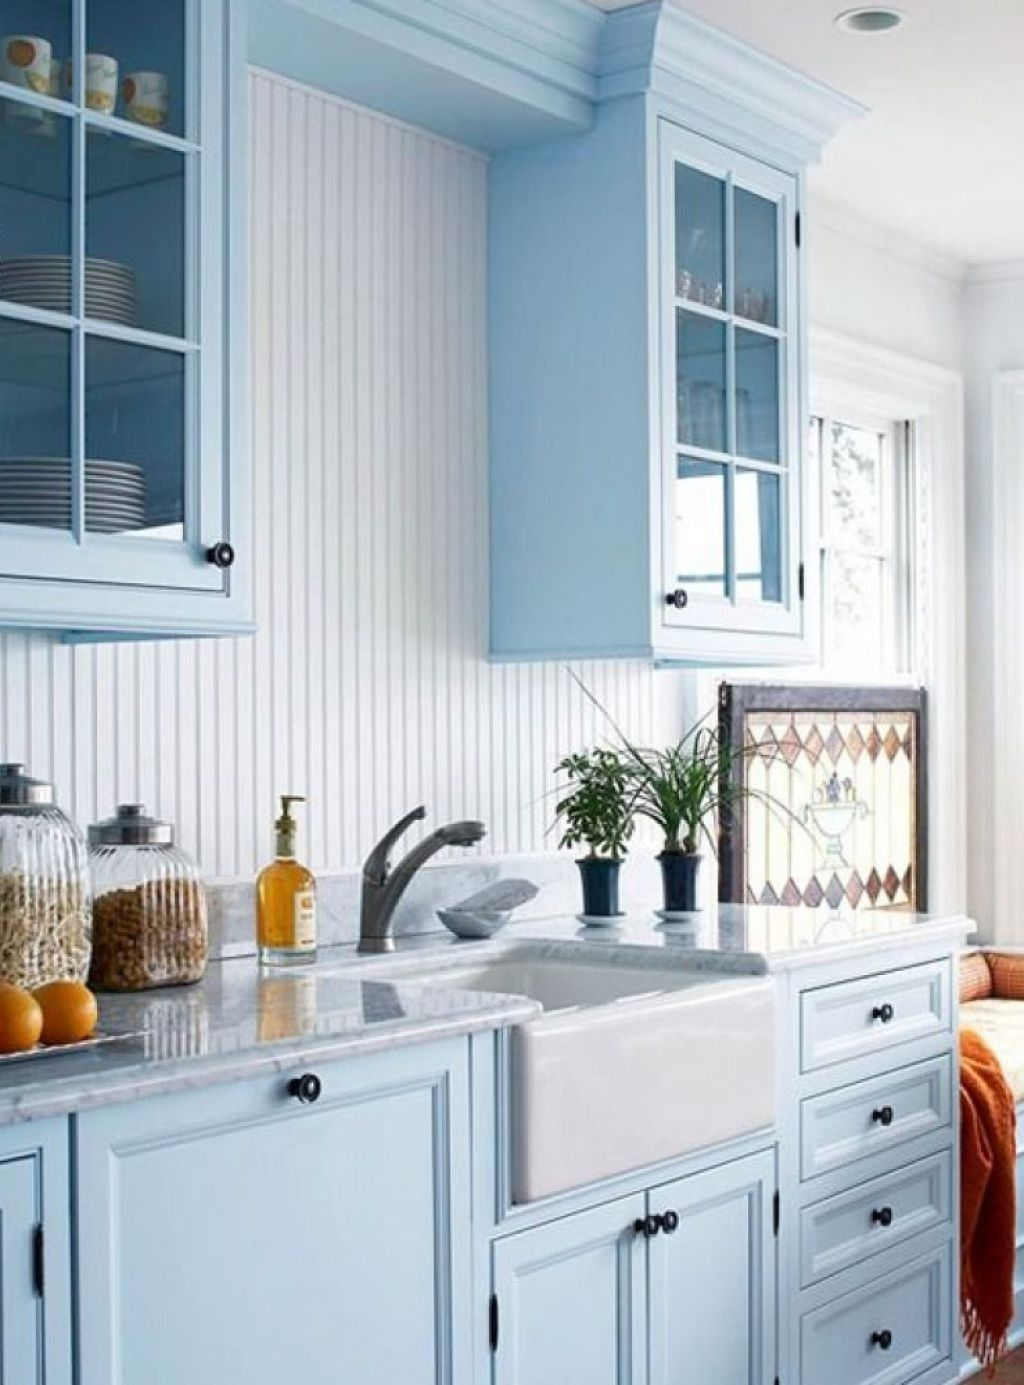 light blue kitchen cabinets colors with white apron sink in the rh pinterest com light blue kitchen cabinet paint light color kitchen cabinets